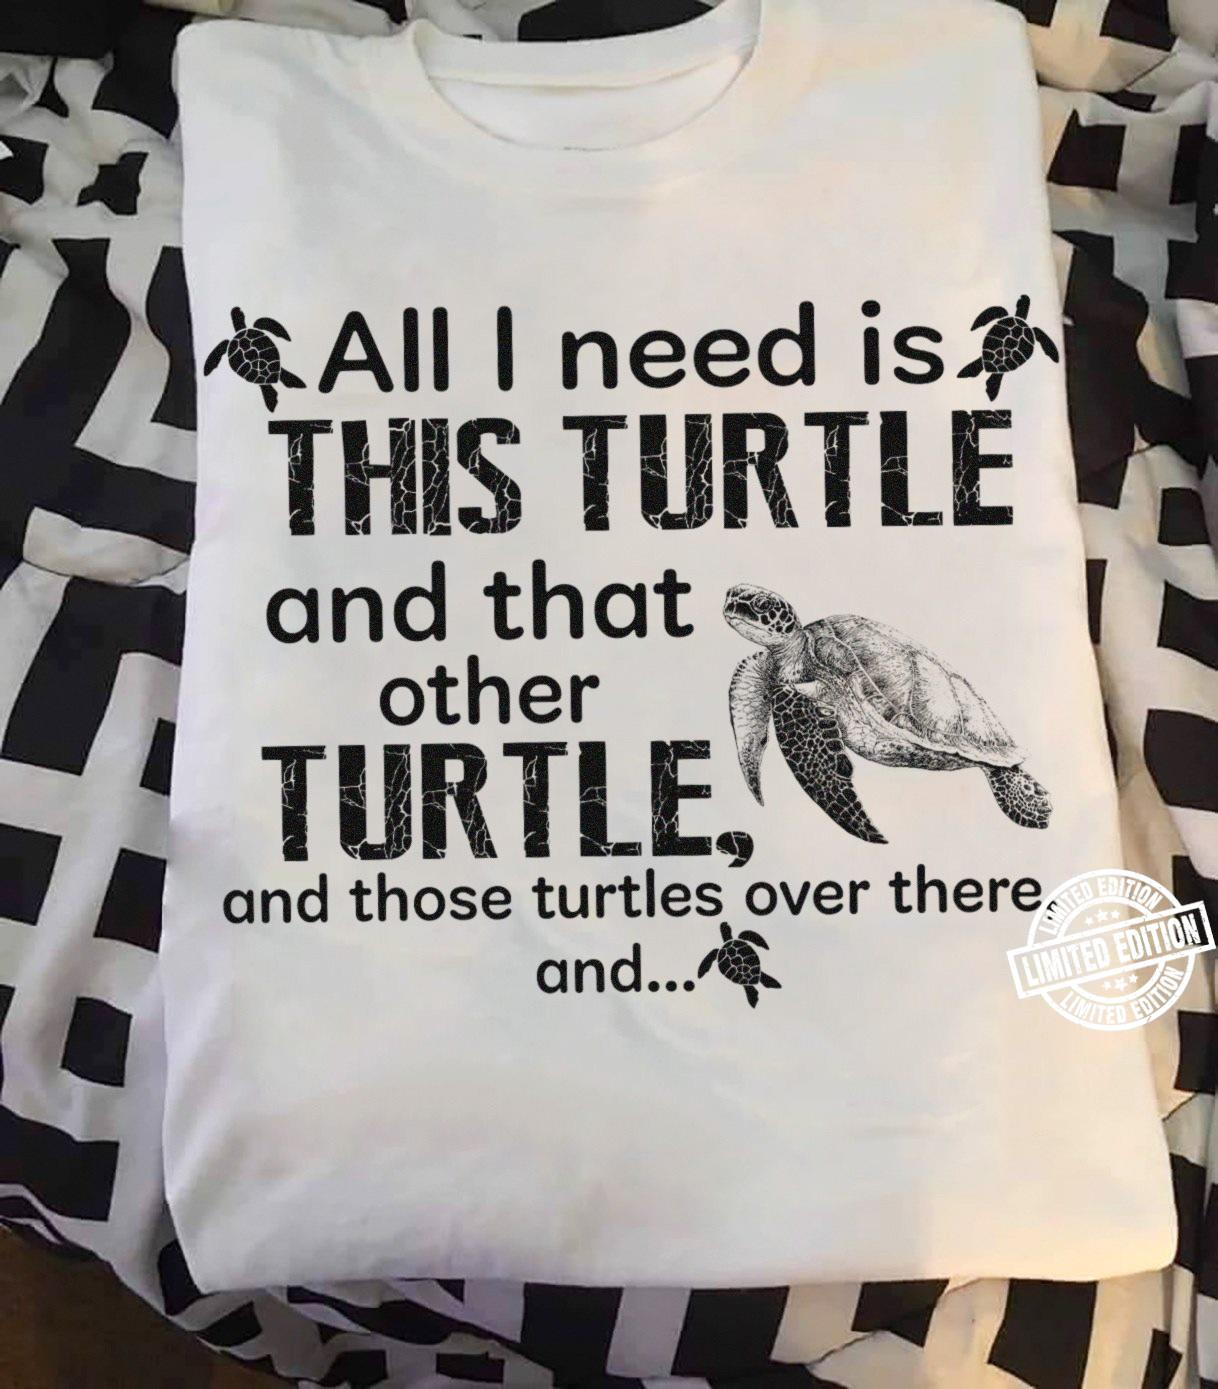 All I need is this turtle and that other turtle and those turtles over there shirt